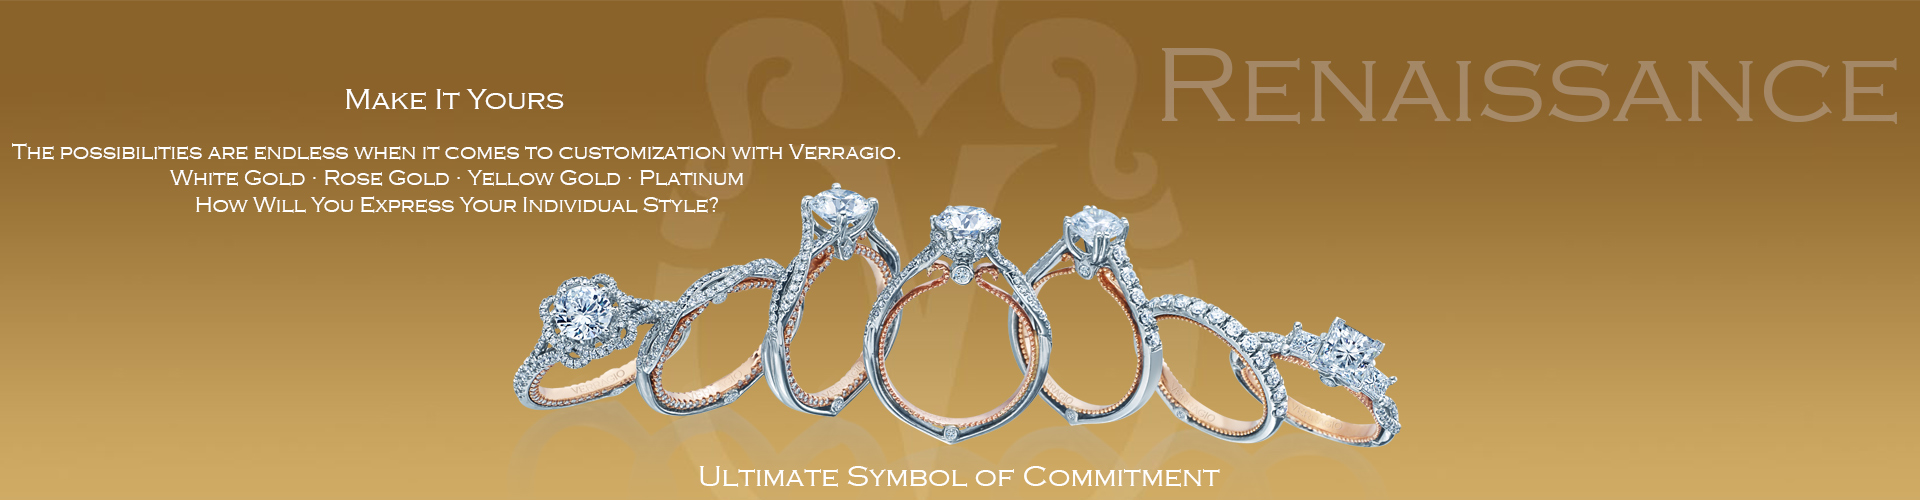 rings anime of style lovely wedding ricksalerealty awesome engagement collection ring best inspired com renaissance